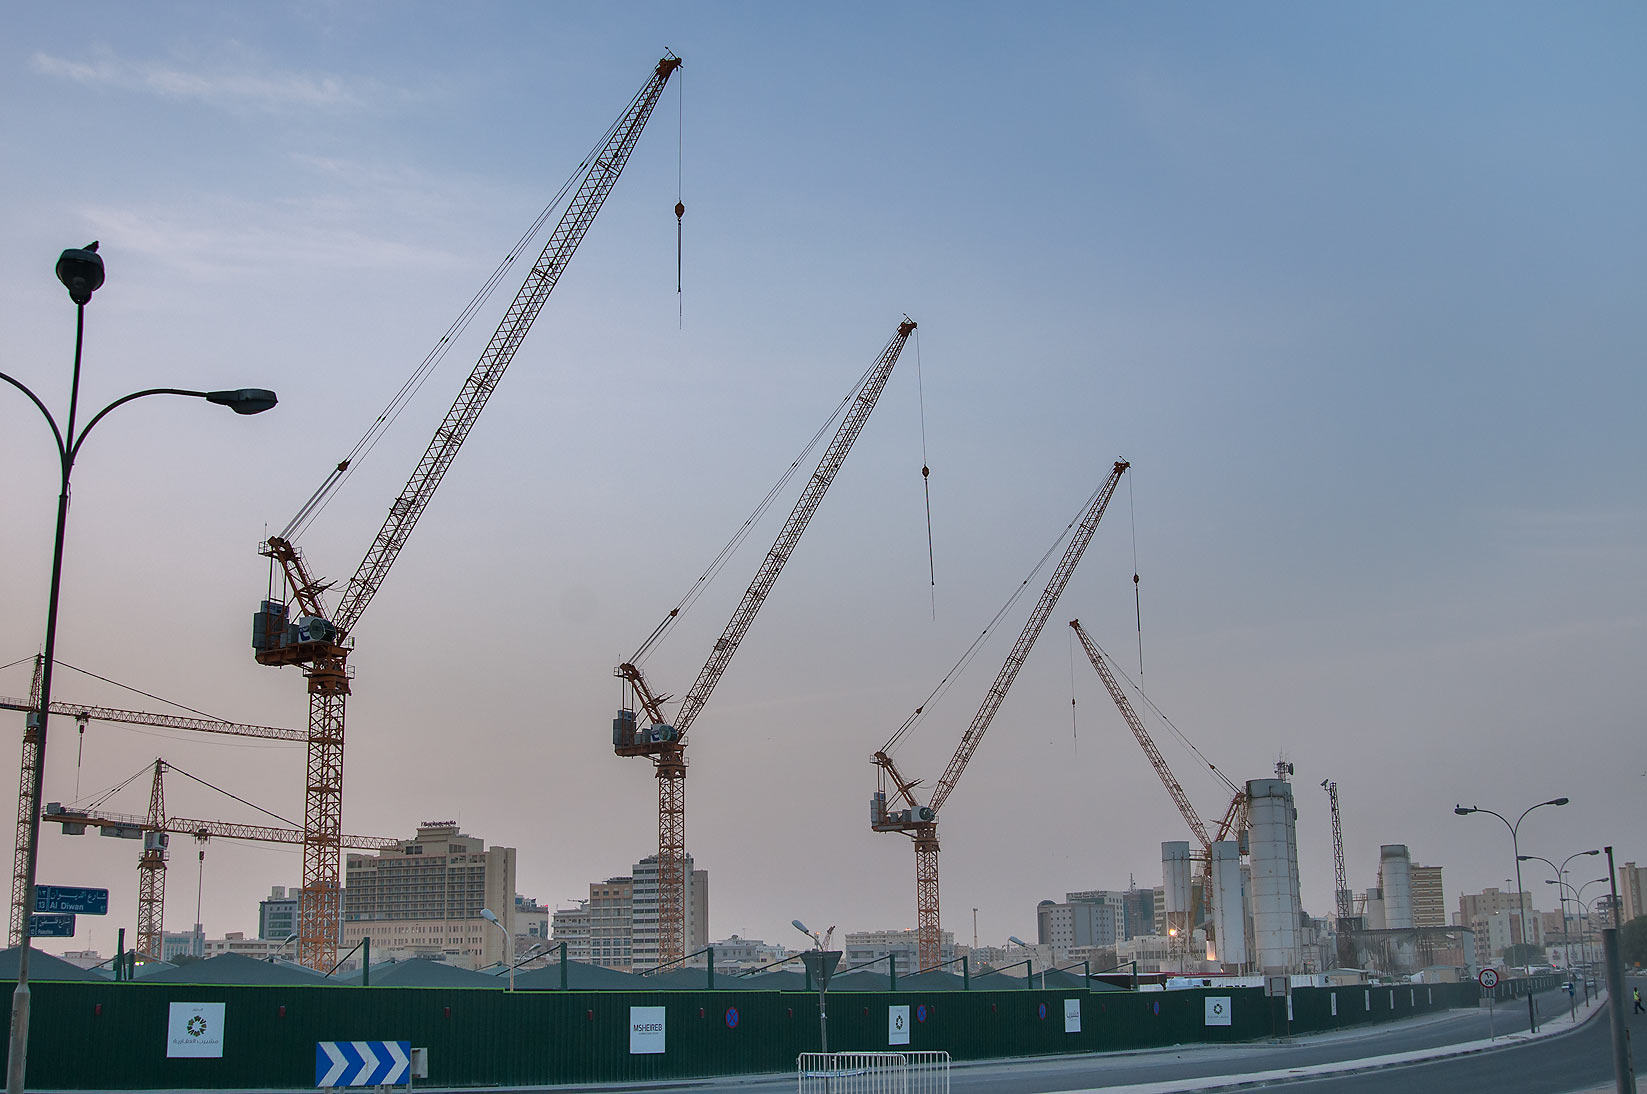 Mushereb Development with cranes. Doha, Qatar